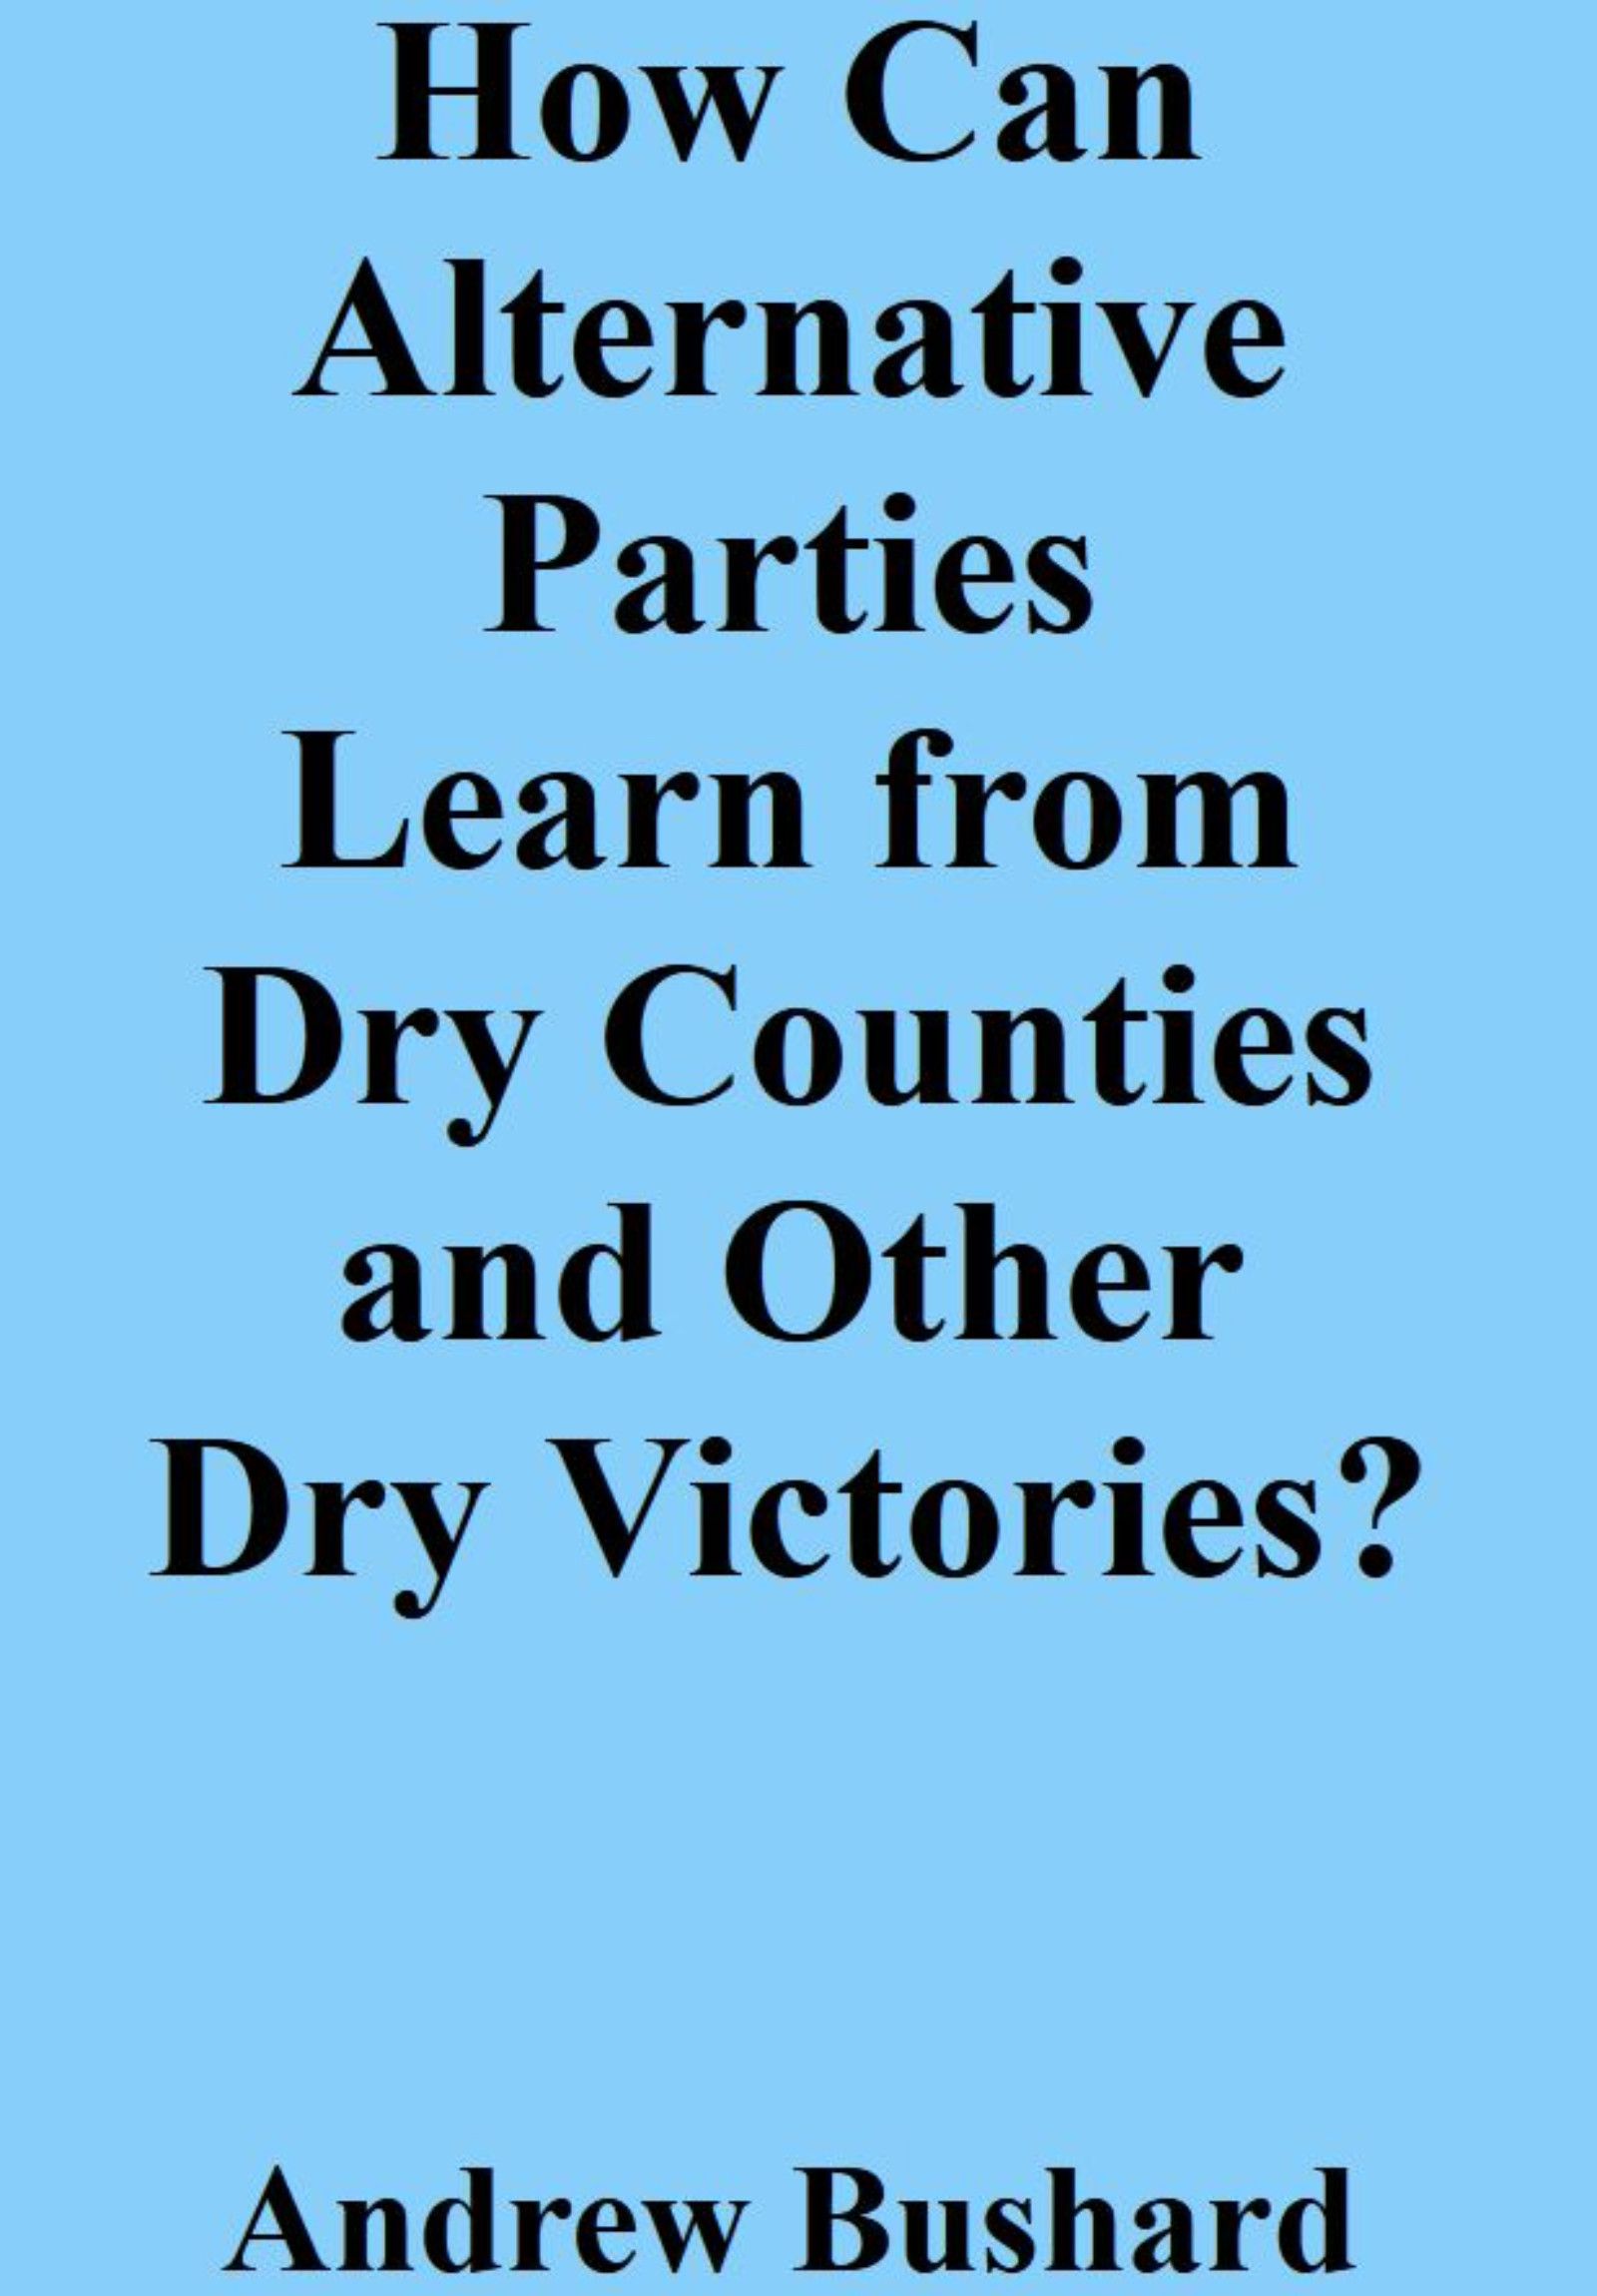 How Can Alternative Parties Learn from Dry Counties and Other Dry Victories?'s featured image